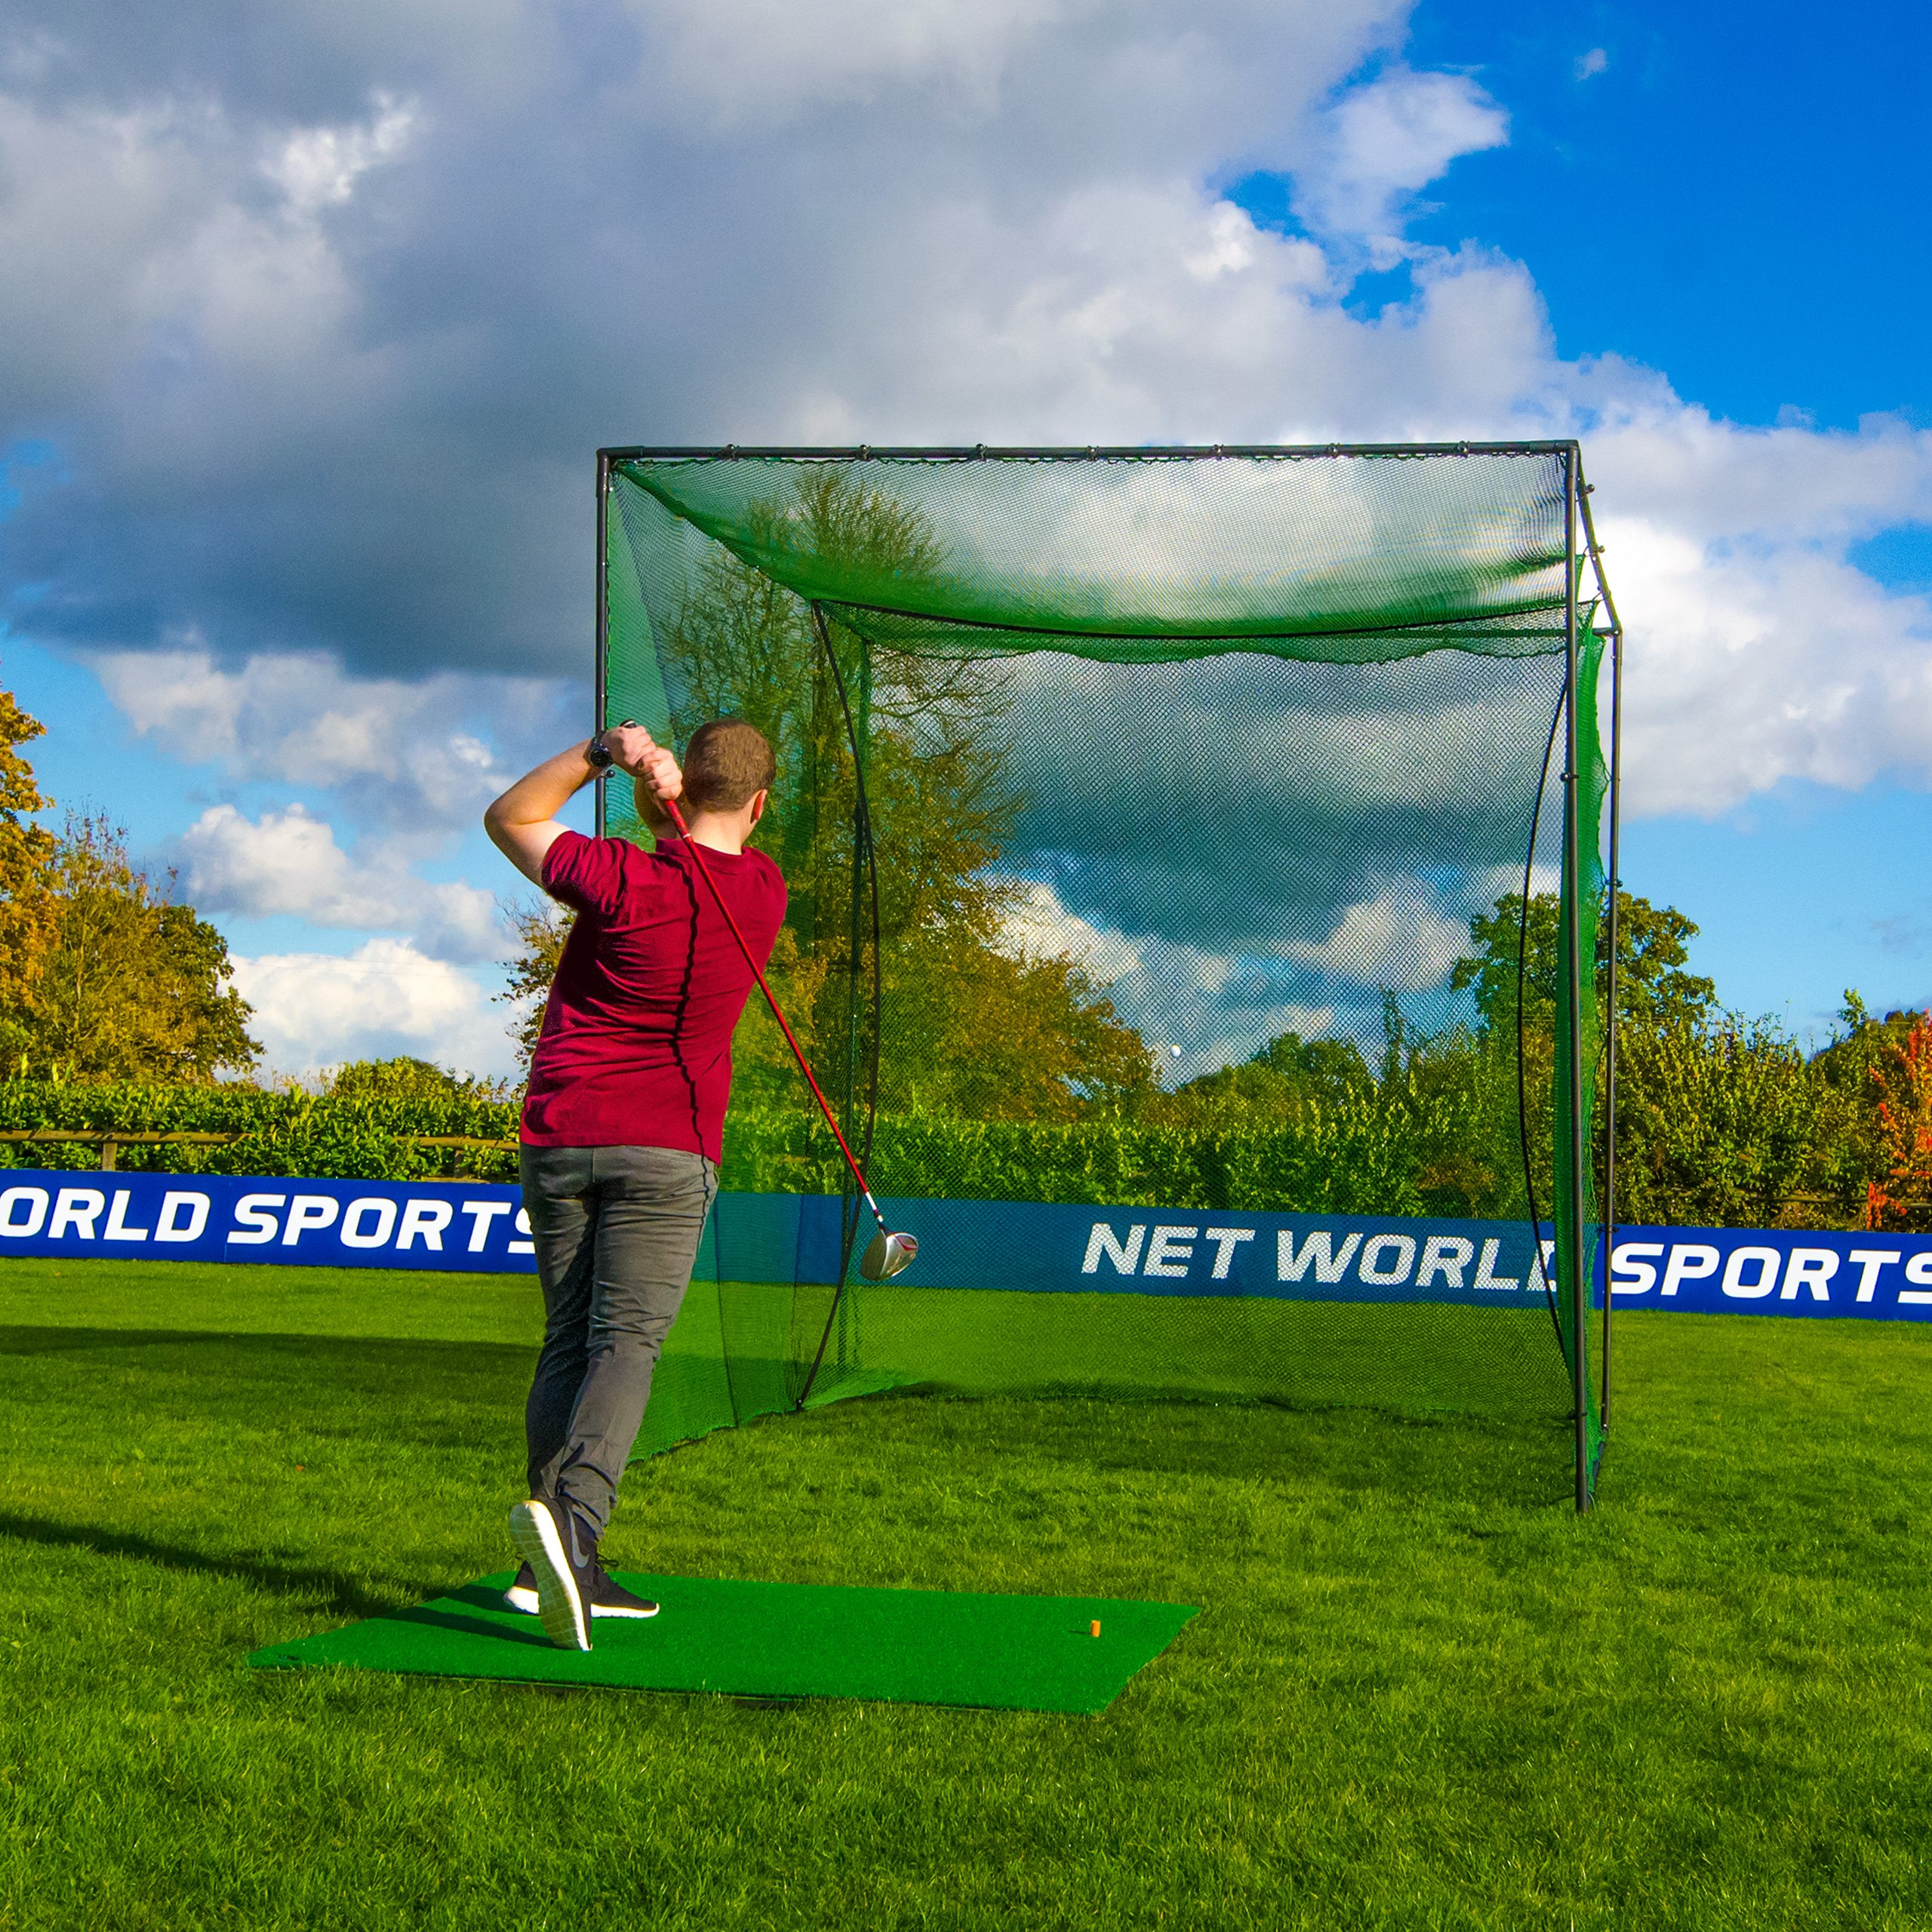 Freestanding Golf Cage - Home Driving Range Net Practice Your Golf Safely From The Comfort Of Your Backyard [Net World Sports]